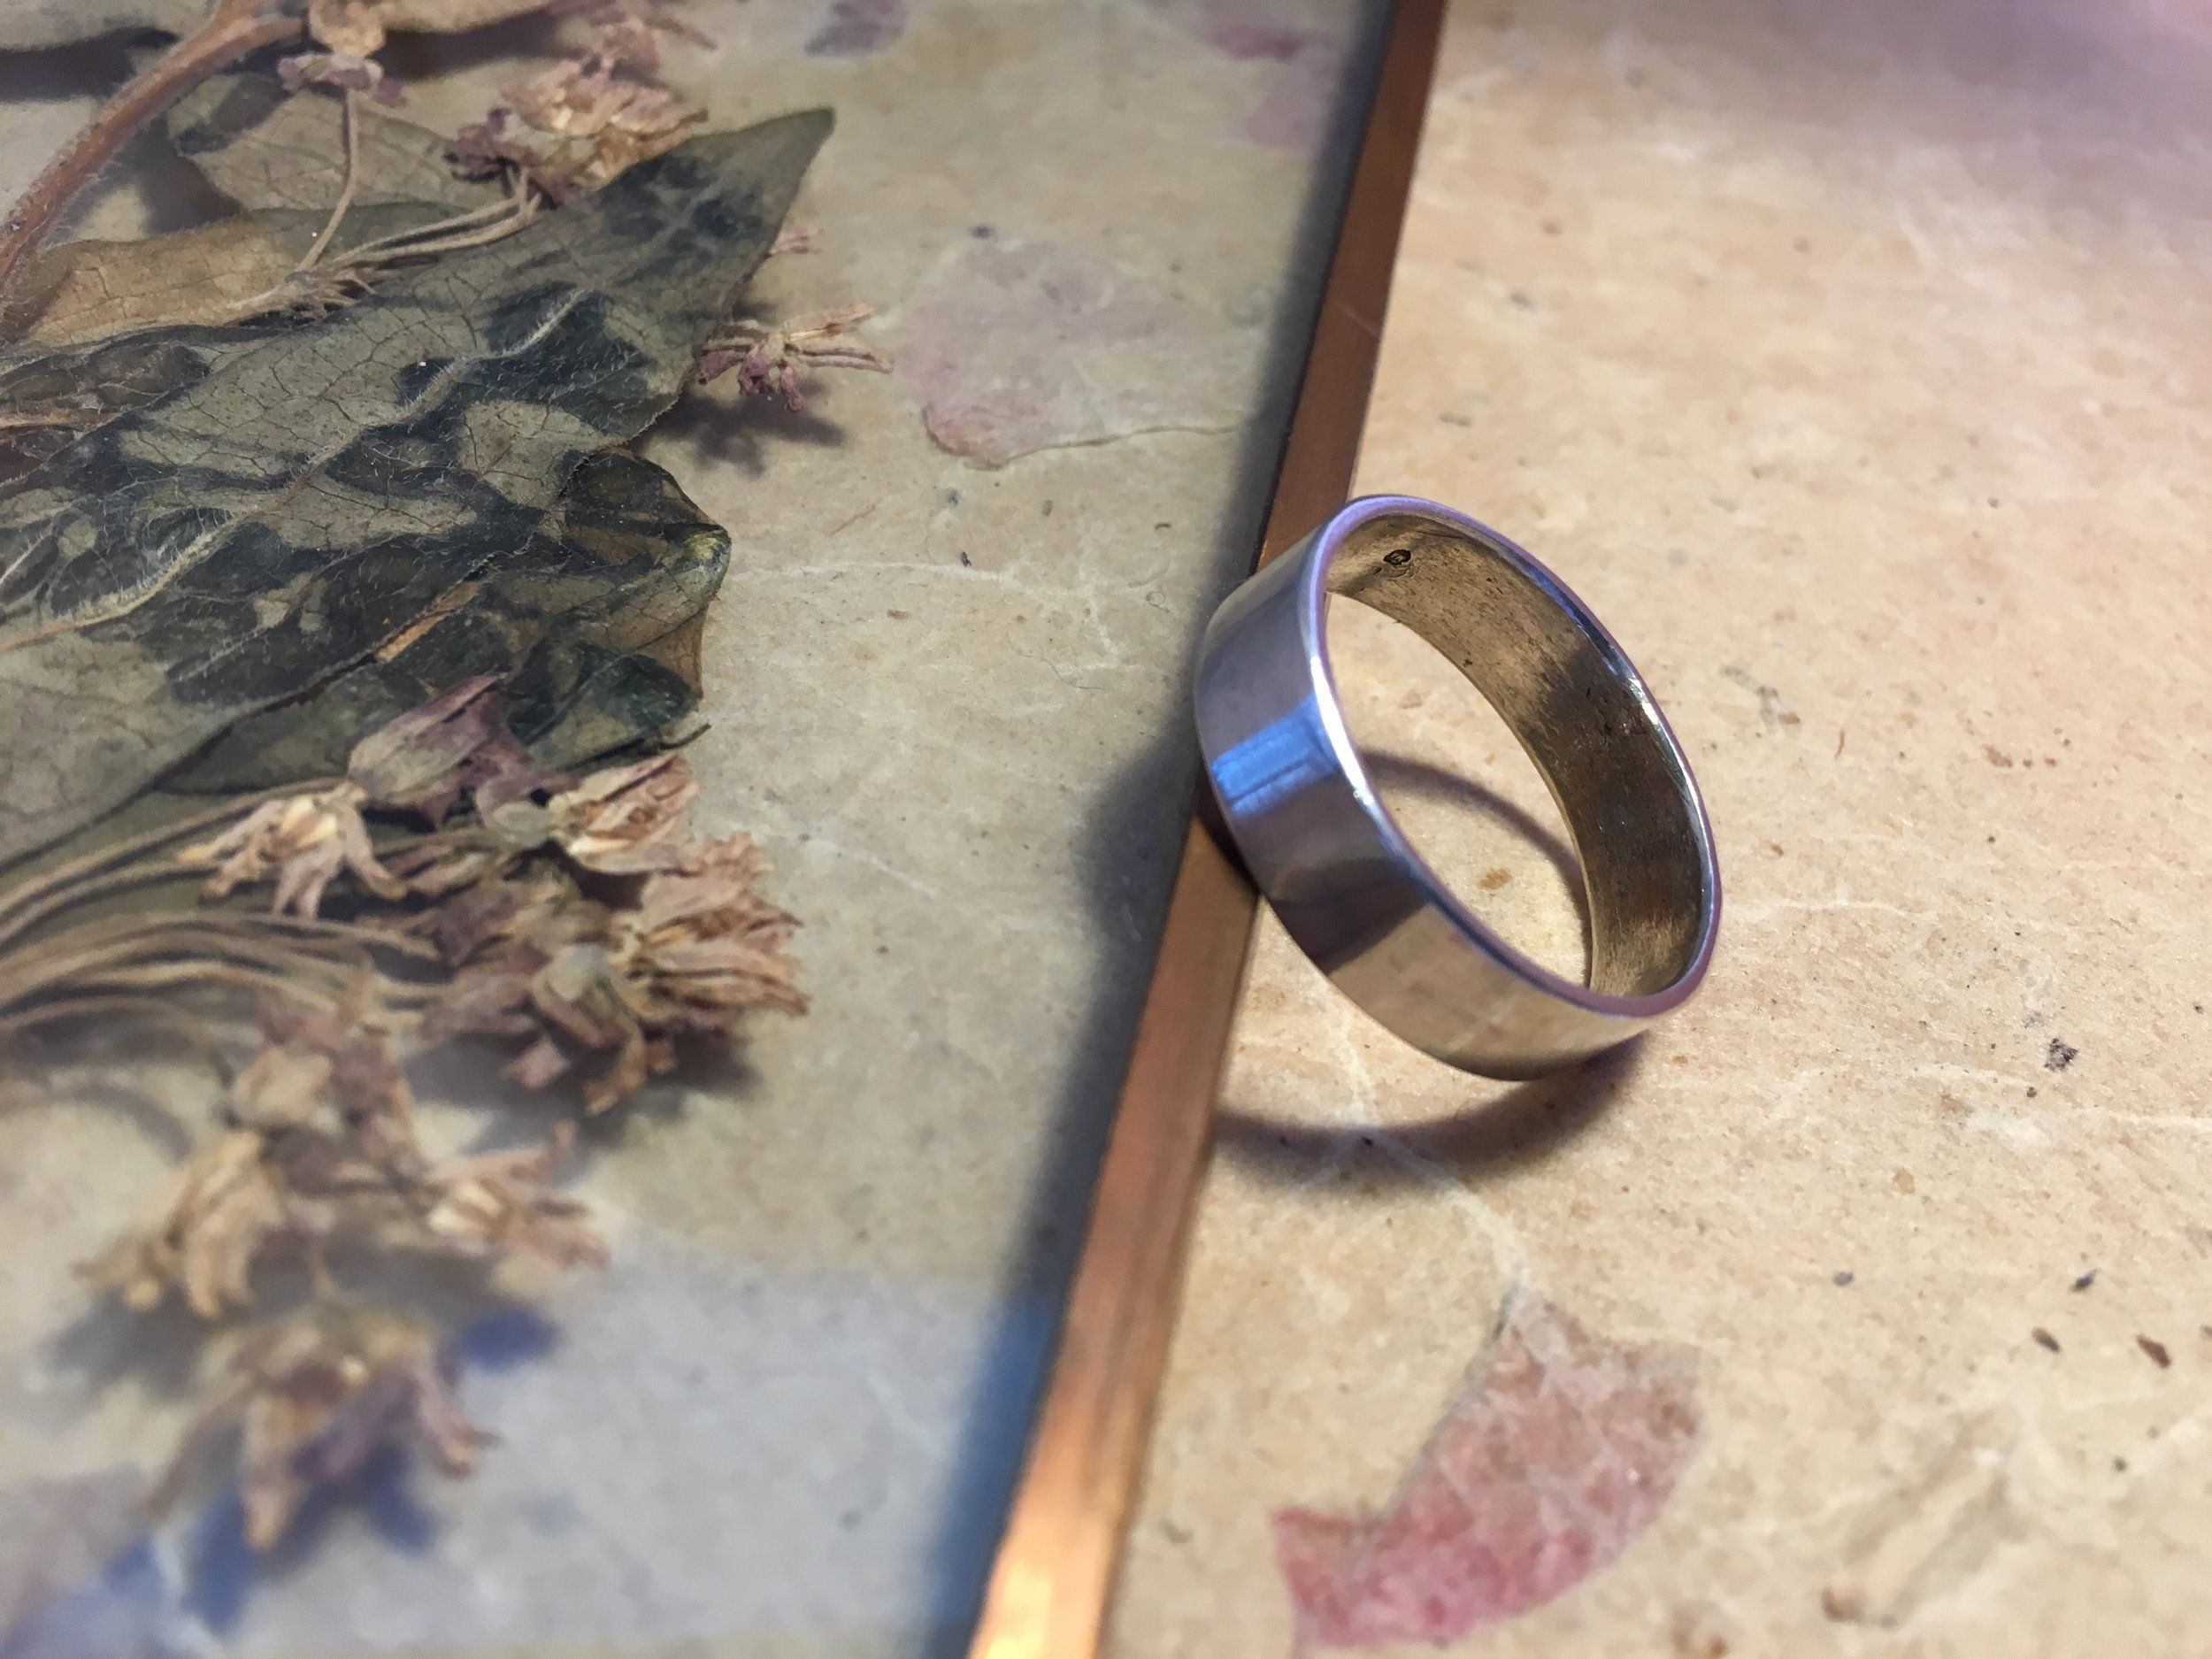 Flat Ring with a Plain Polished or Brushed Texture  Available in varying widths and thicknesses in white gold, yellow gold, rose gold, sterling silver, ethical recycled silver, and ethical recycled gold.  £50 - £350 *